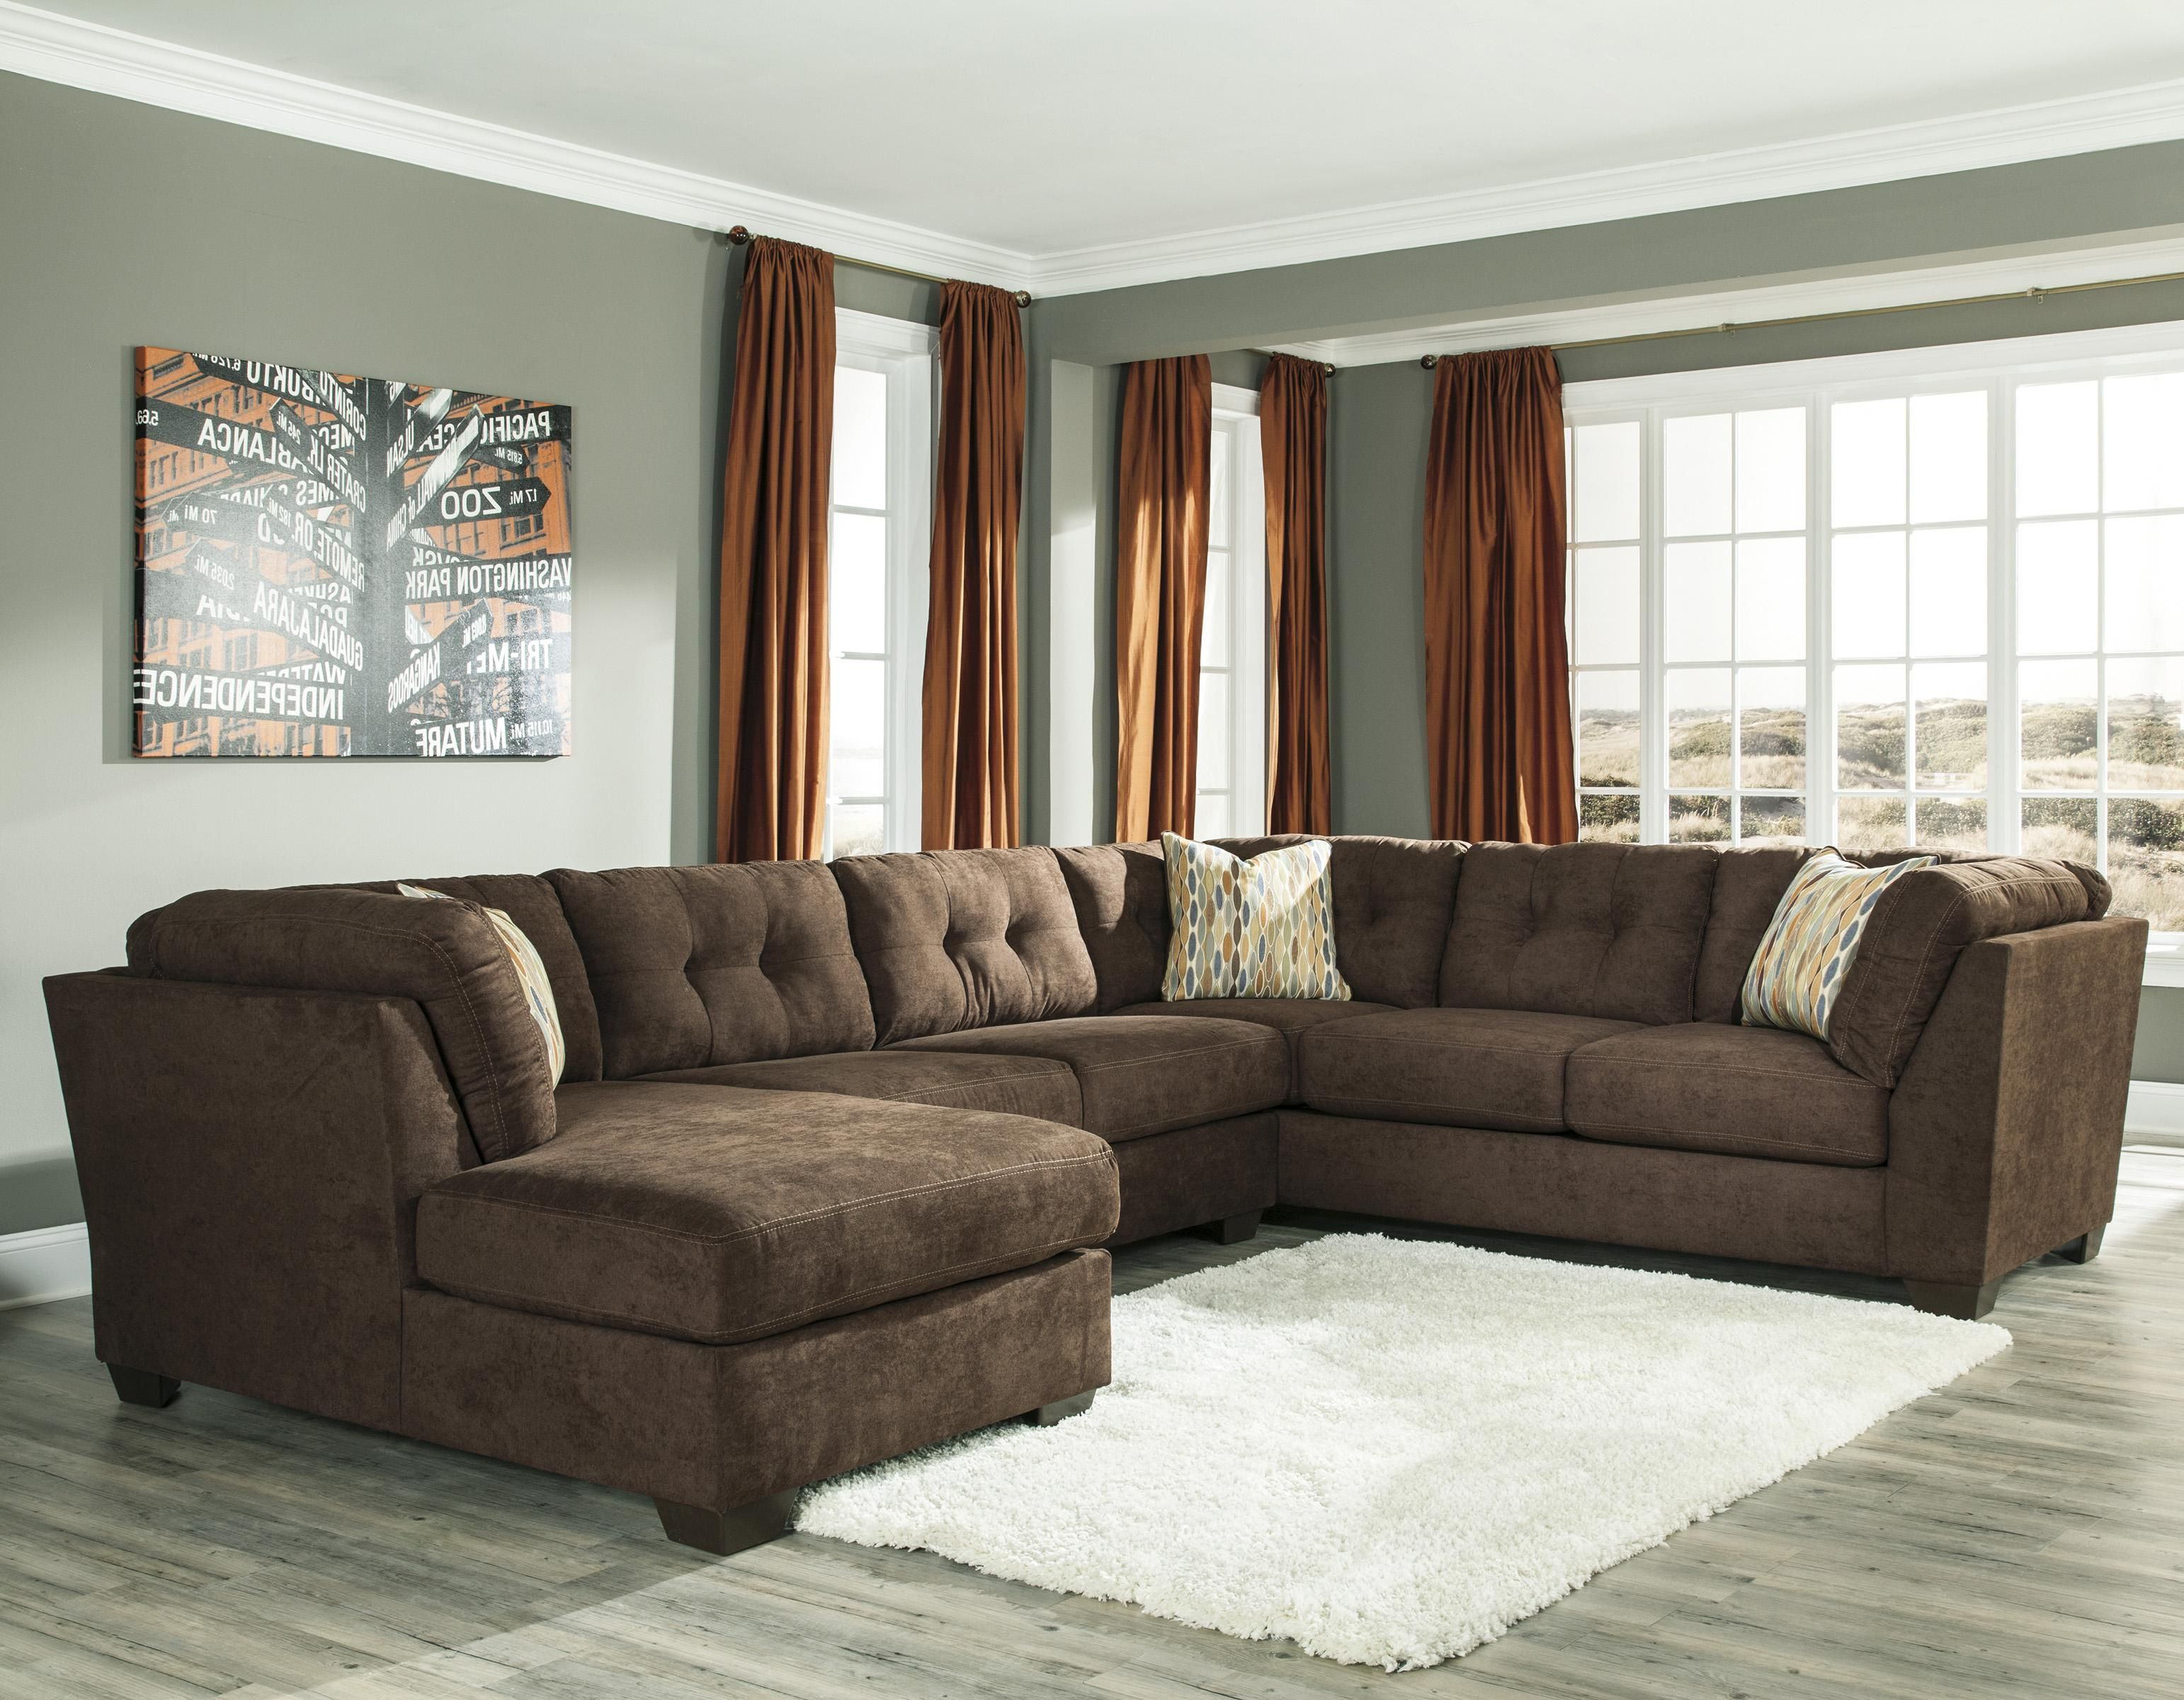 Ashley/Benchcraft Delta City   Chocolate 3 Piece Modular Sectional With  Left Chaise